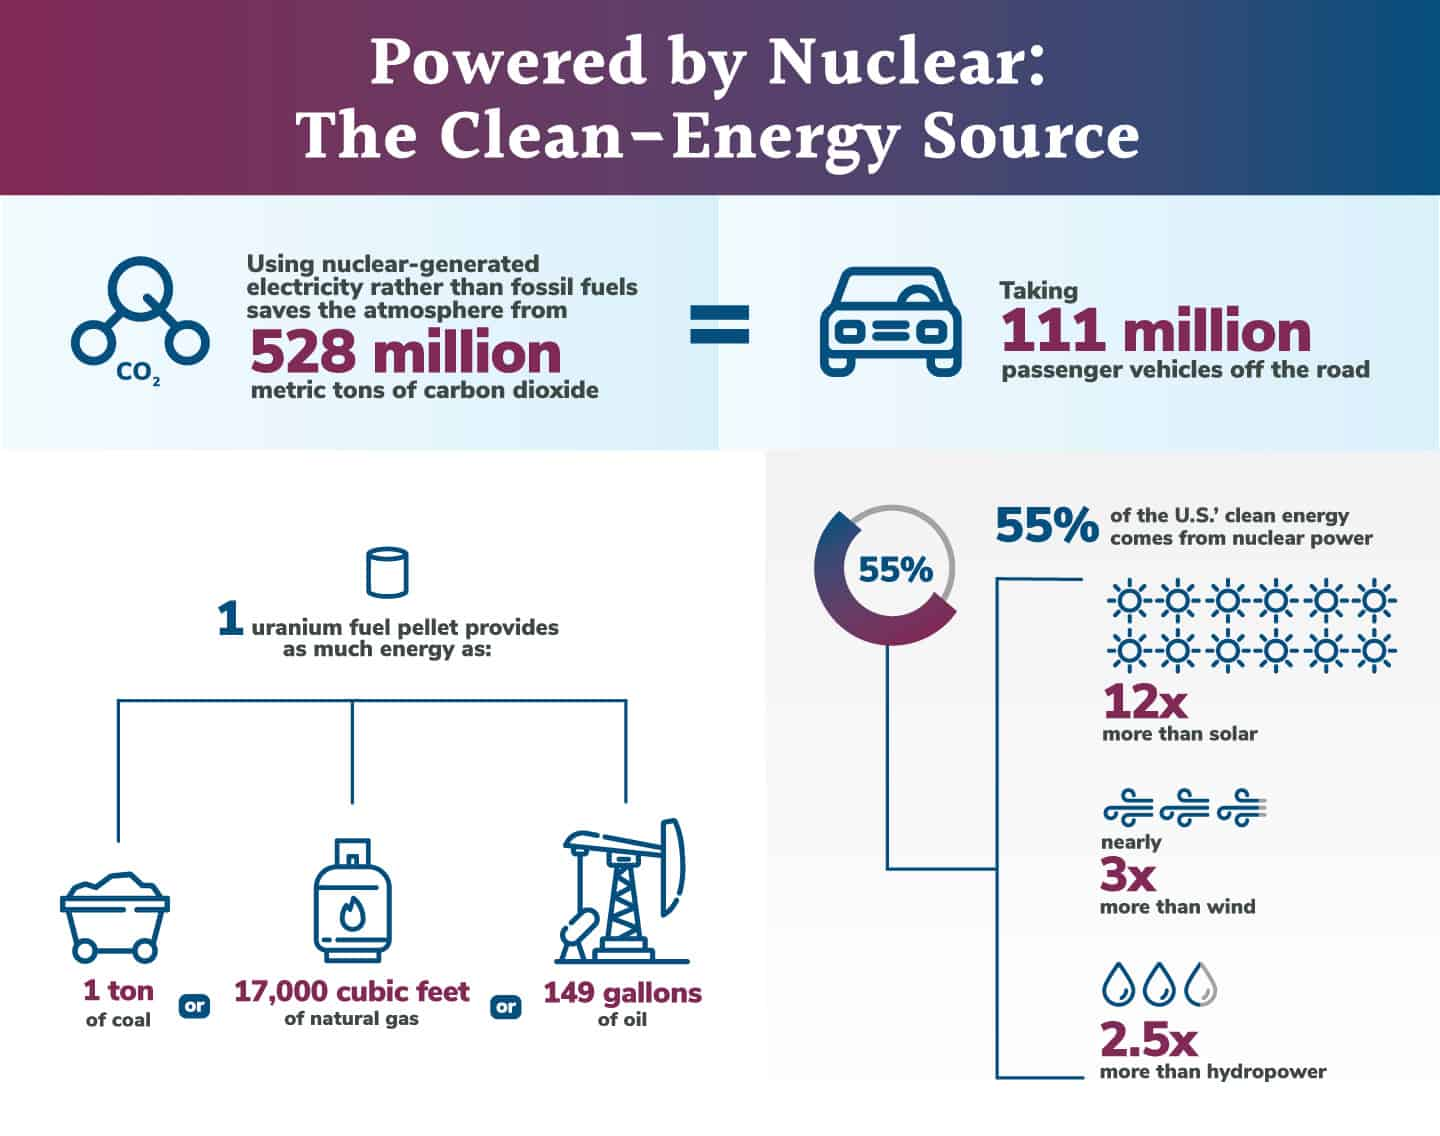 VTR Infographic- Powered by Nuclear: The Clean-Energy Source